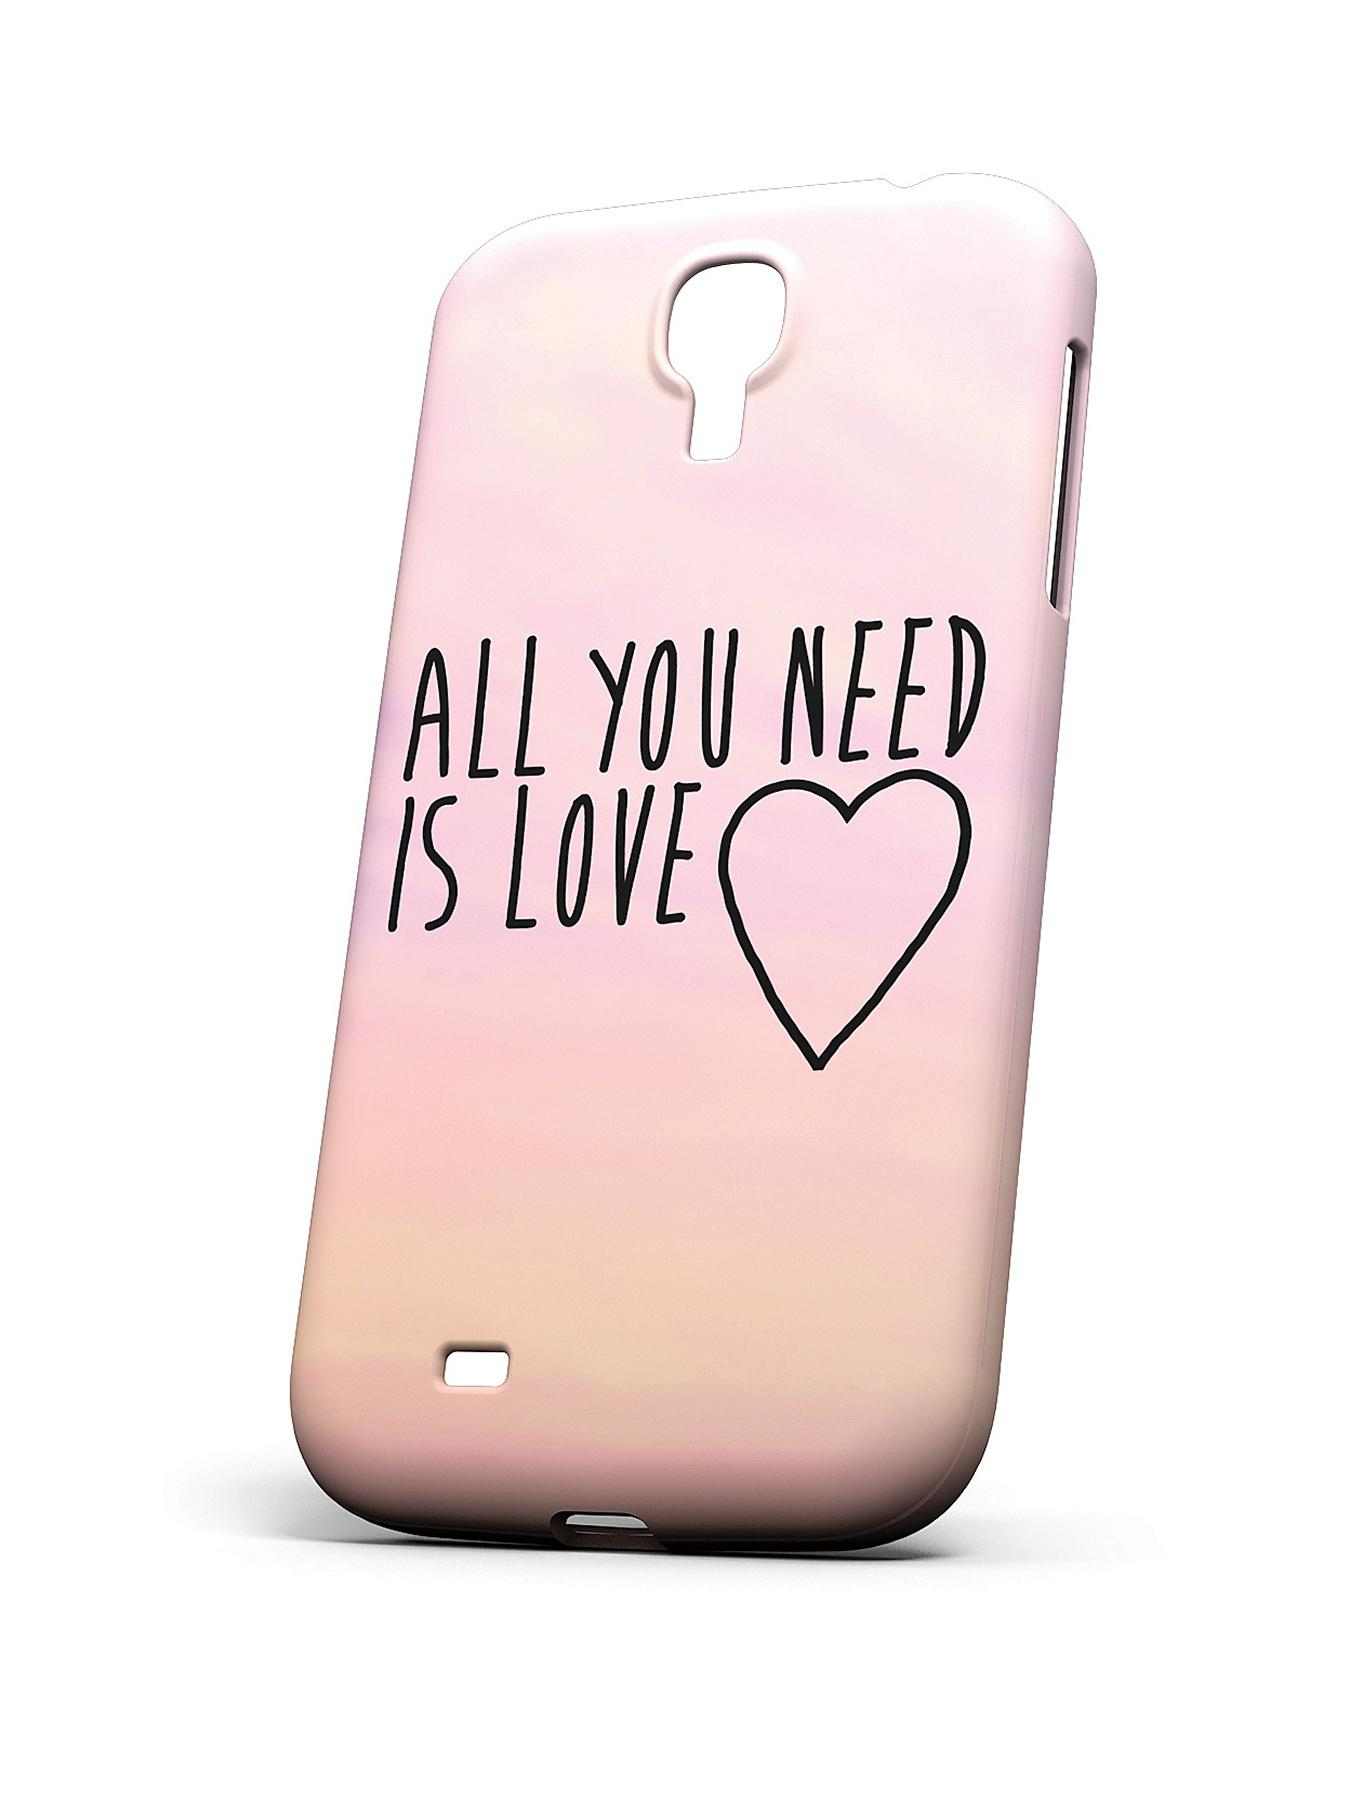 Samsung Galaxy S5 All You Need Is Love Case at Littlewoods